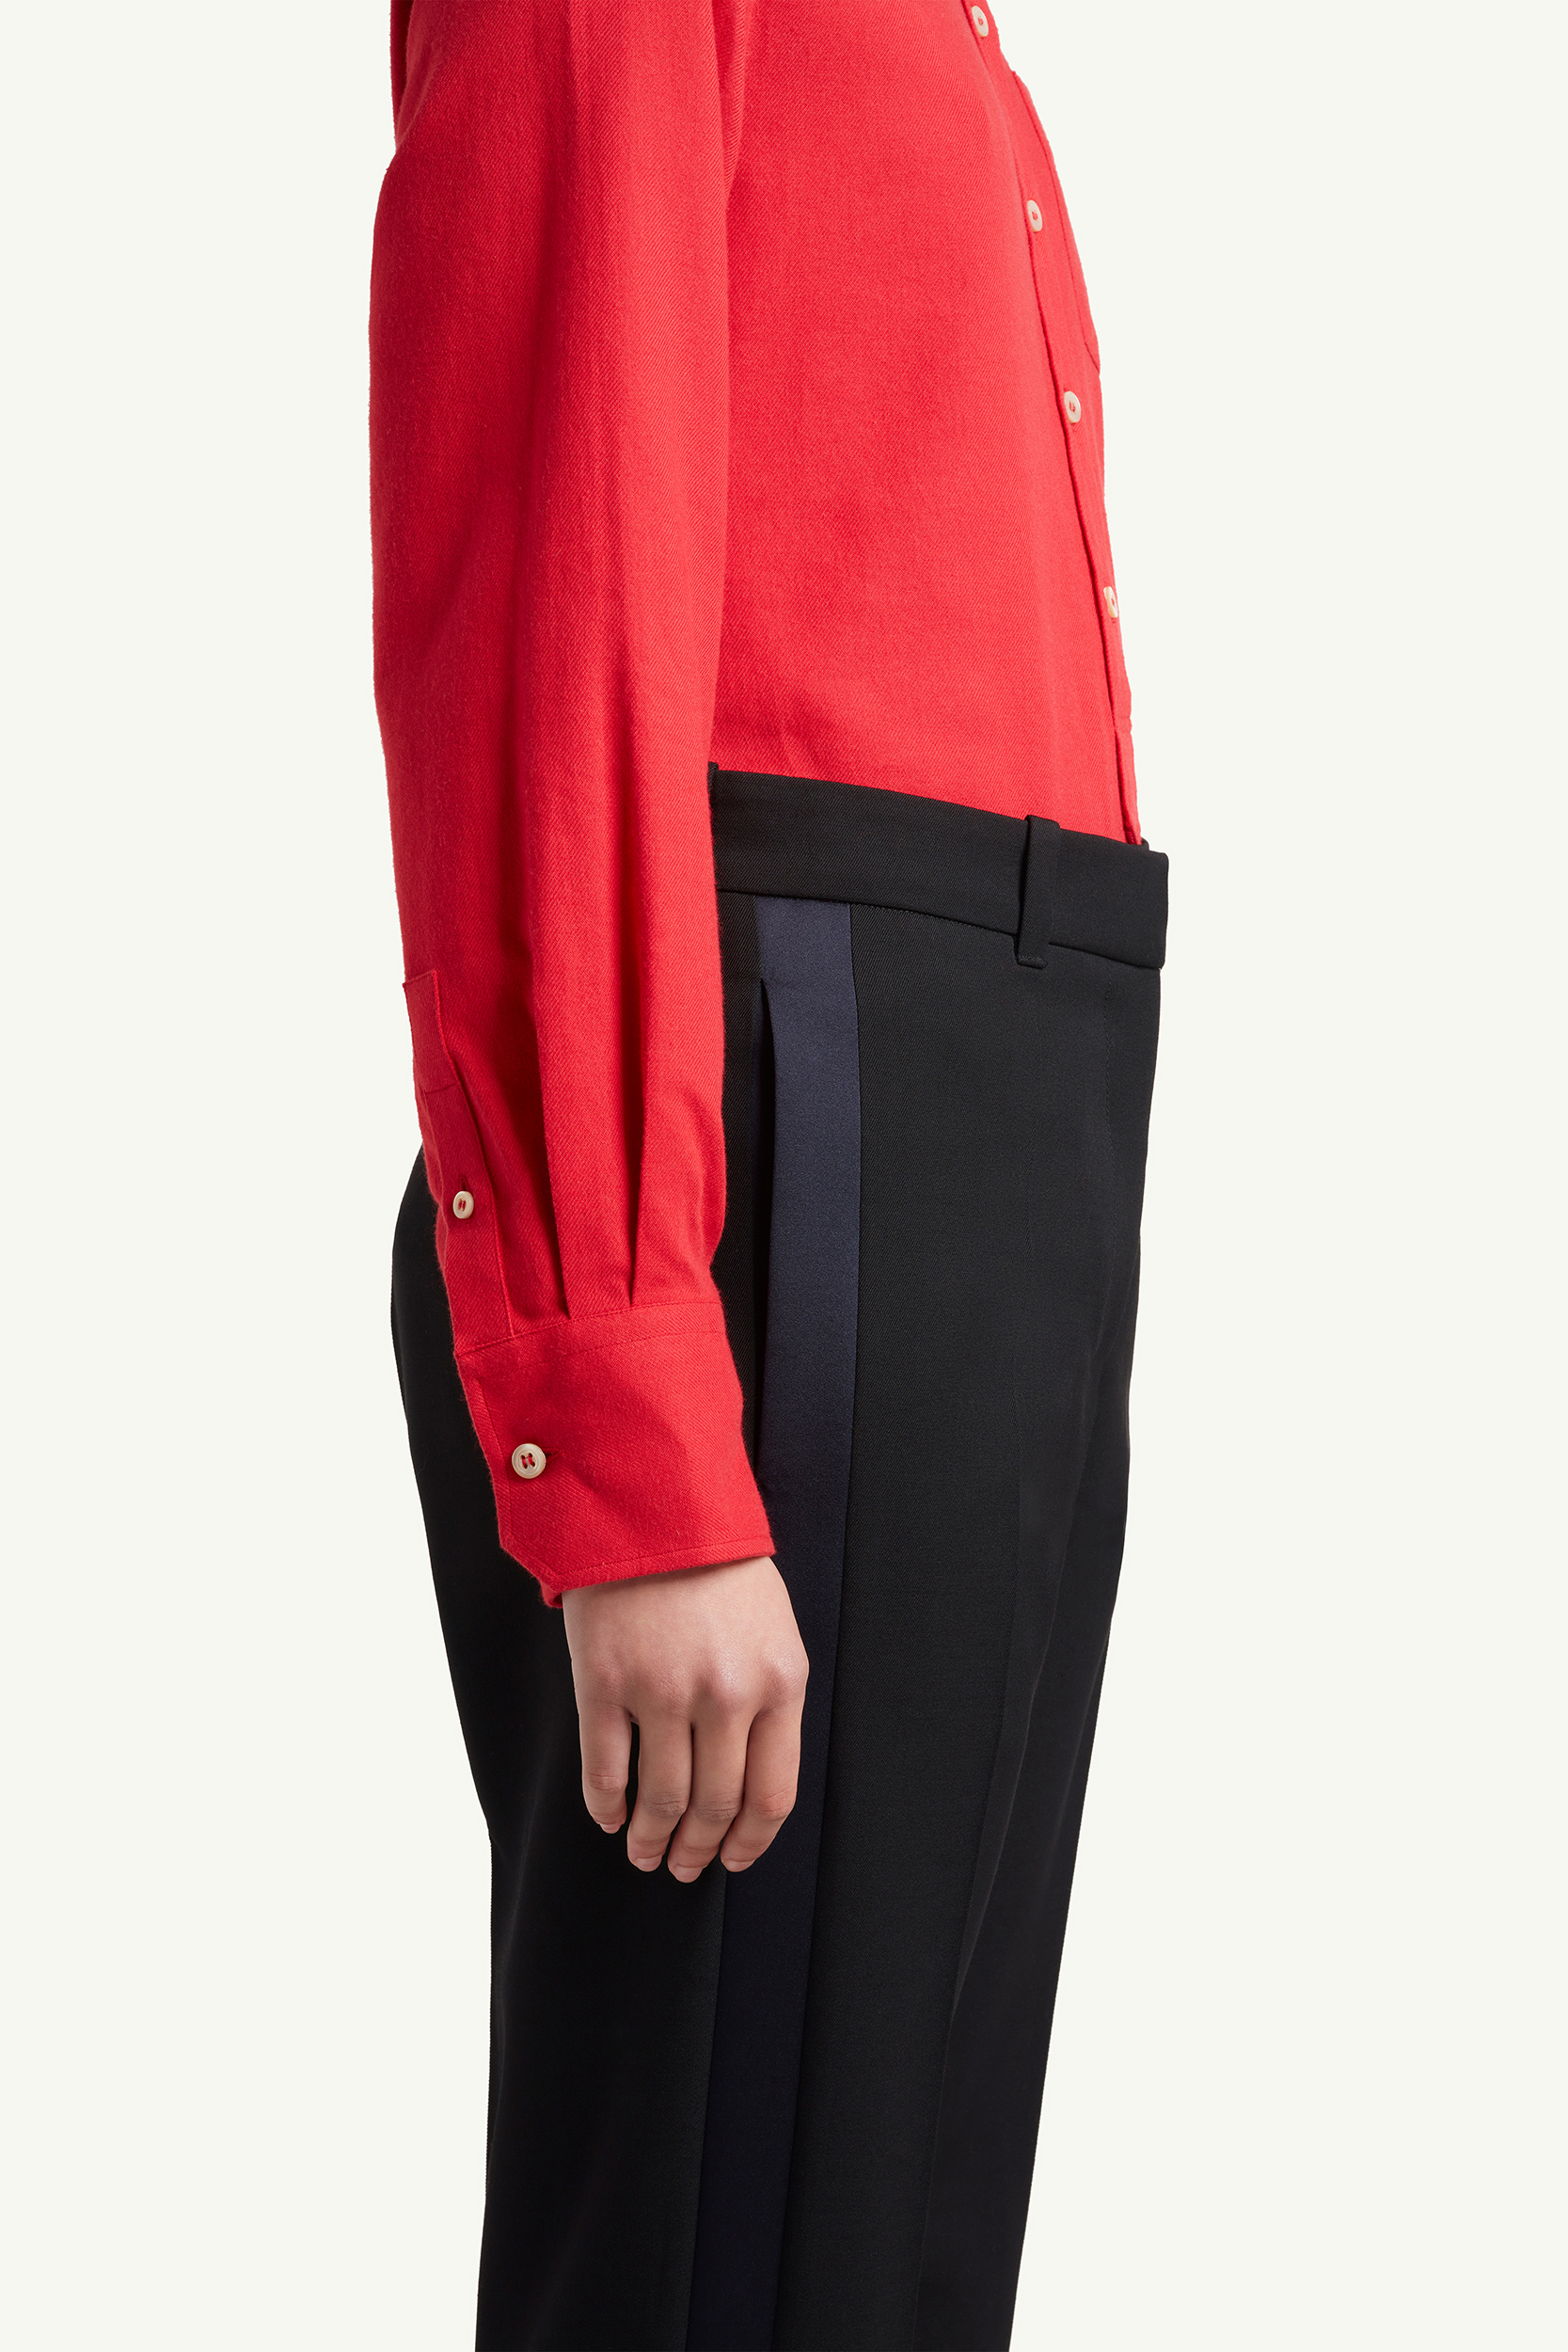 Side detail shot of Wales Bonner red shirt and black smart trousers